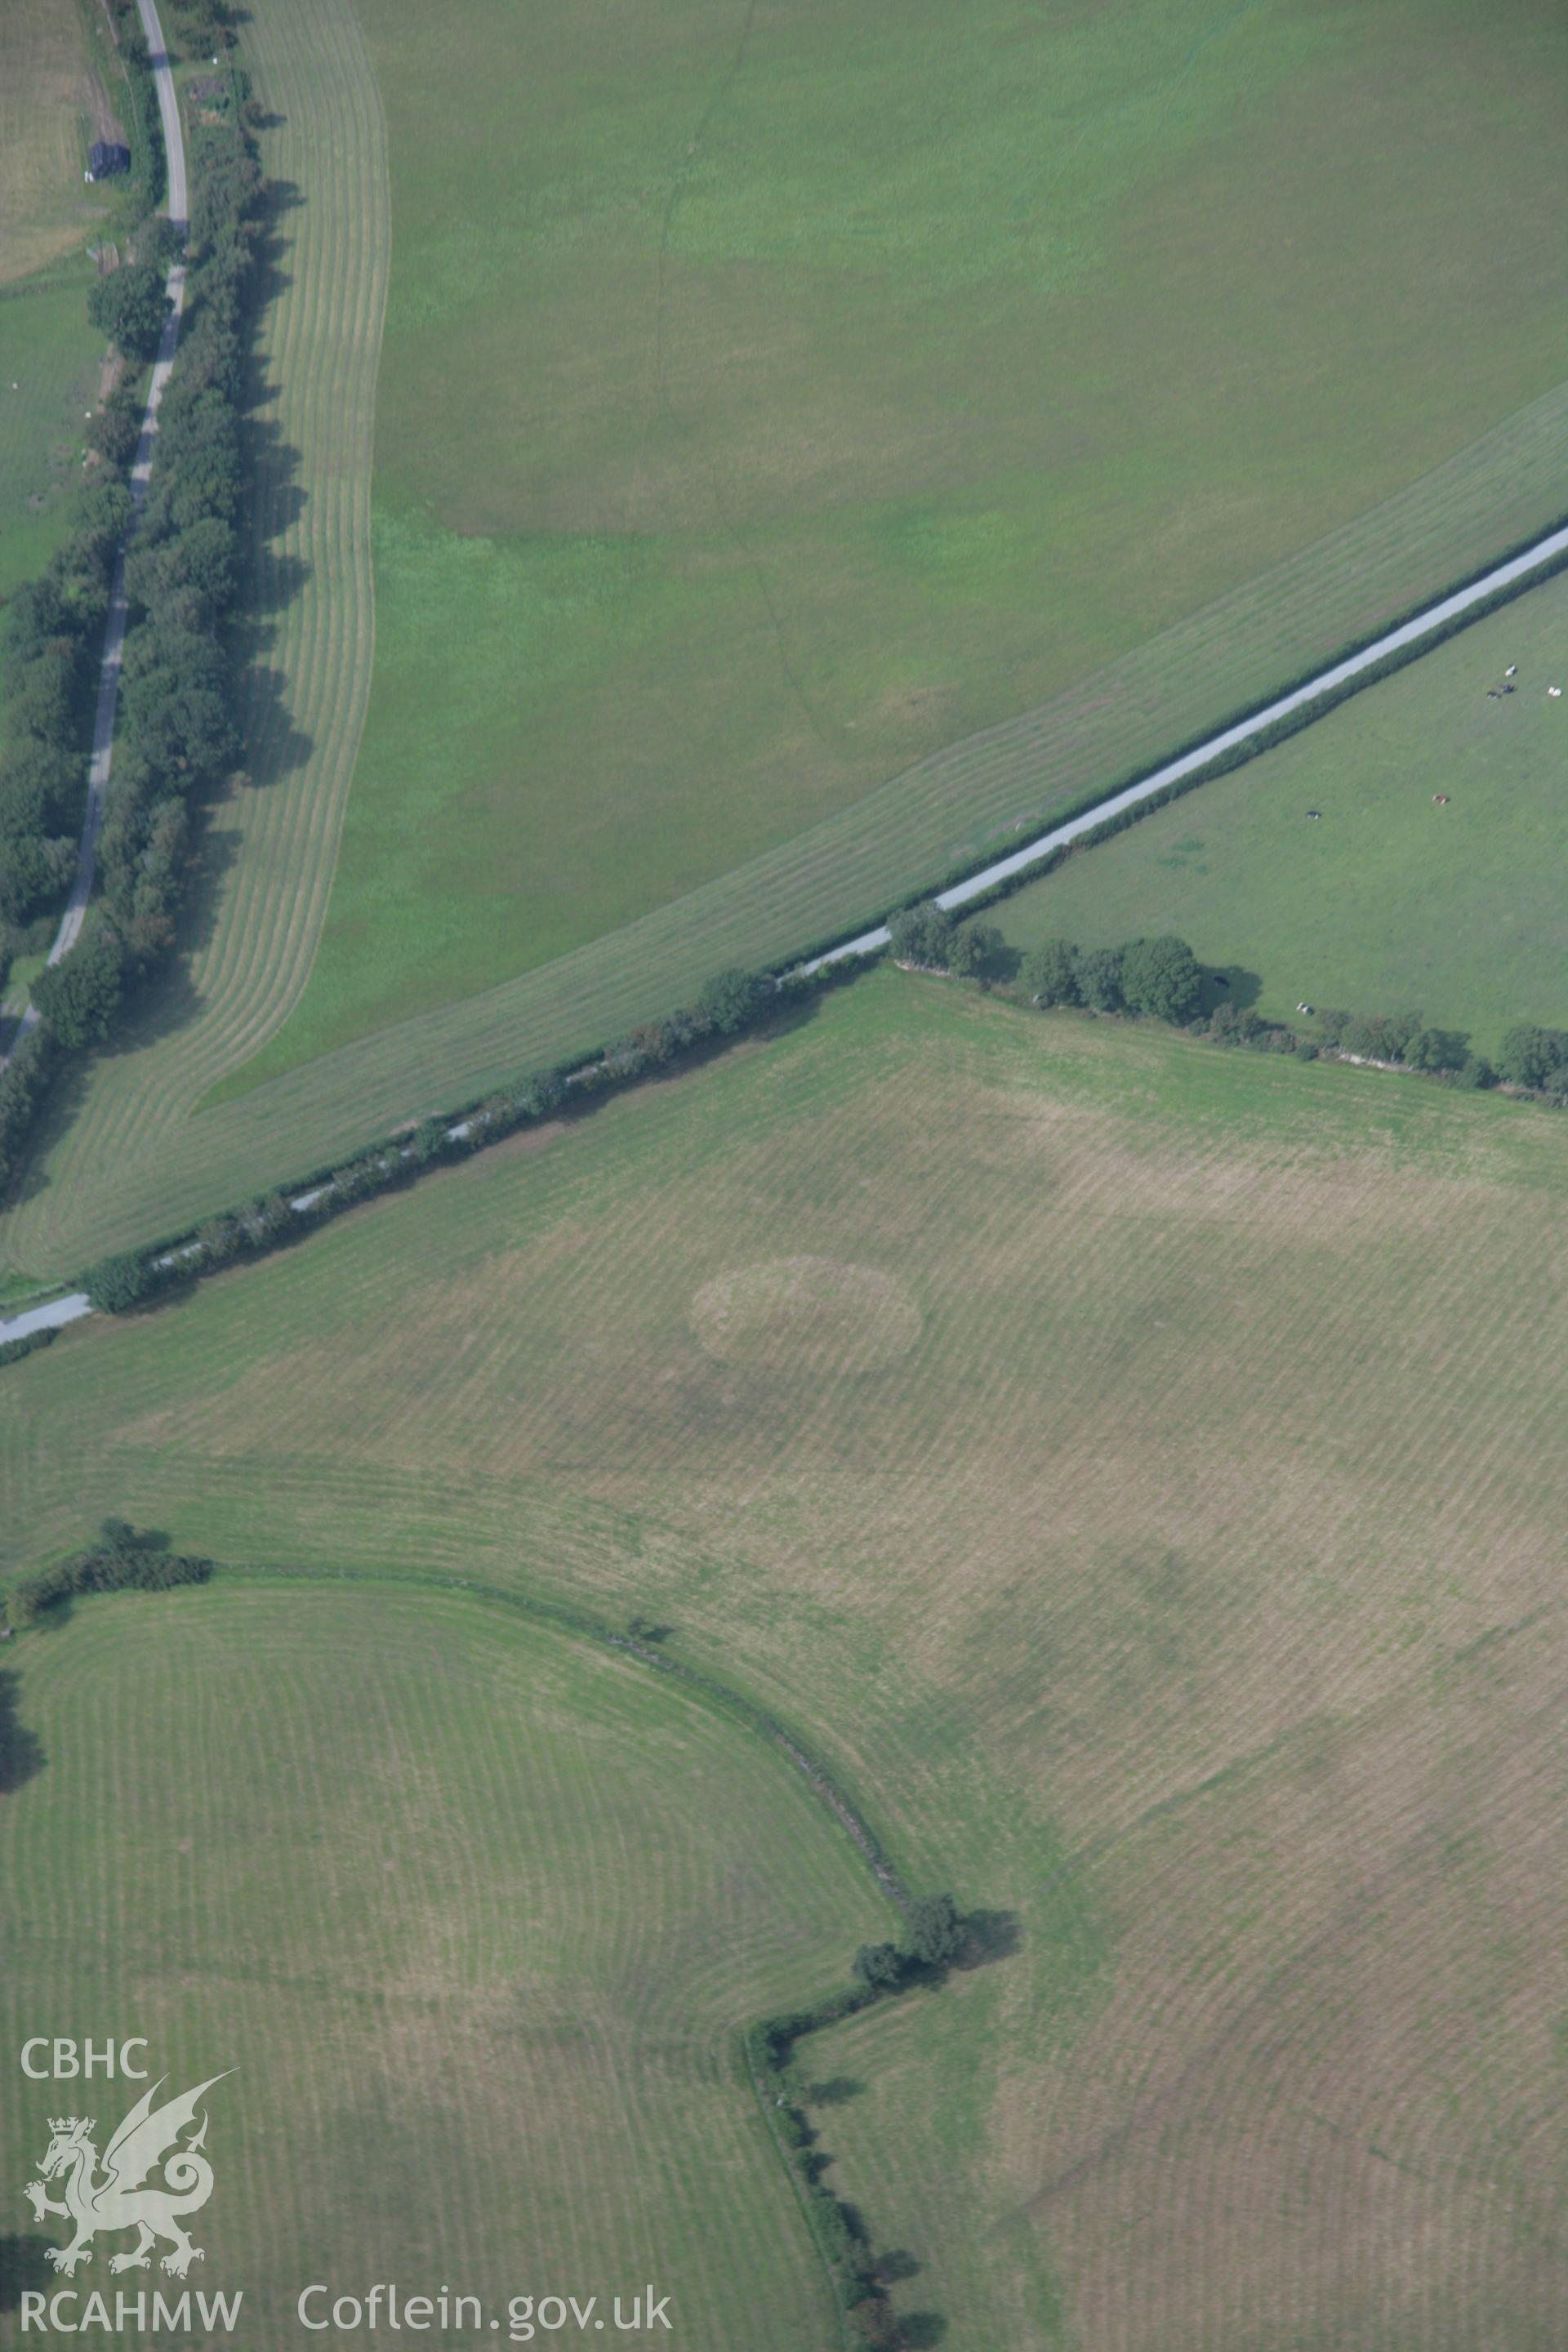 RCAHMW colour oblique aerial photograph of Rhos y Domen Round Barrows. Taken on 14 August 2006 by Toby Driver.